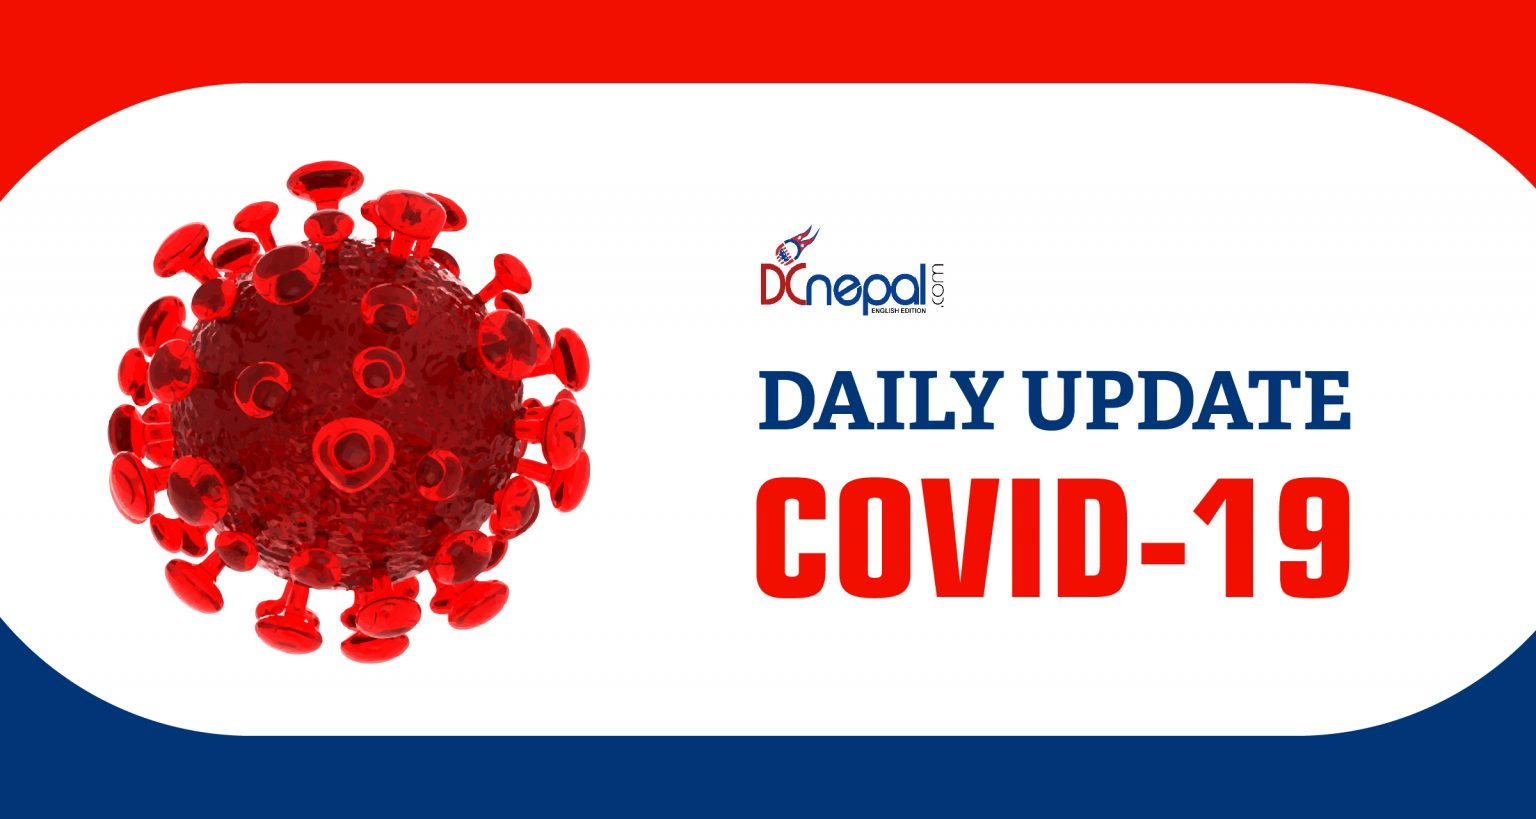 Daily Update on COVID-19: January 27, 2021